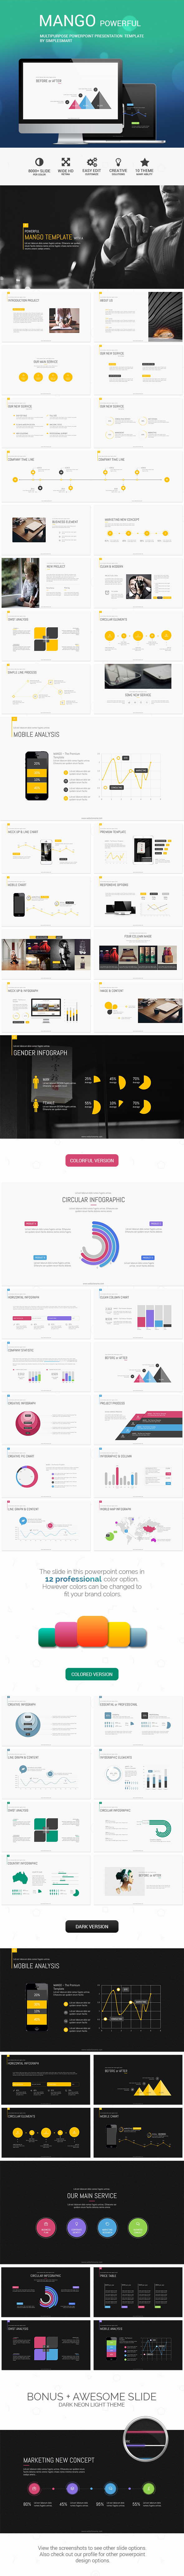 GraphicRiver ManGo Creative & Multipurpose Presentation Templ 9092261